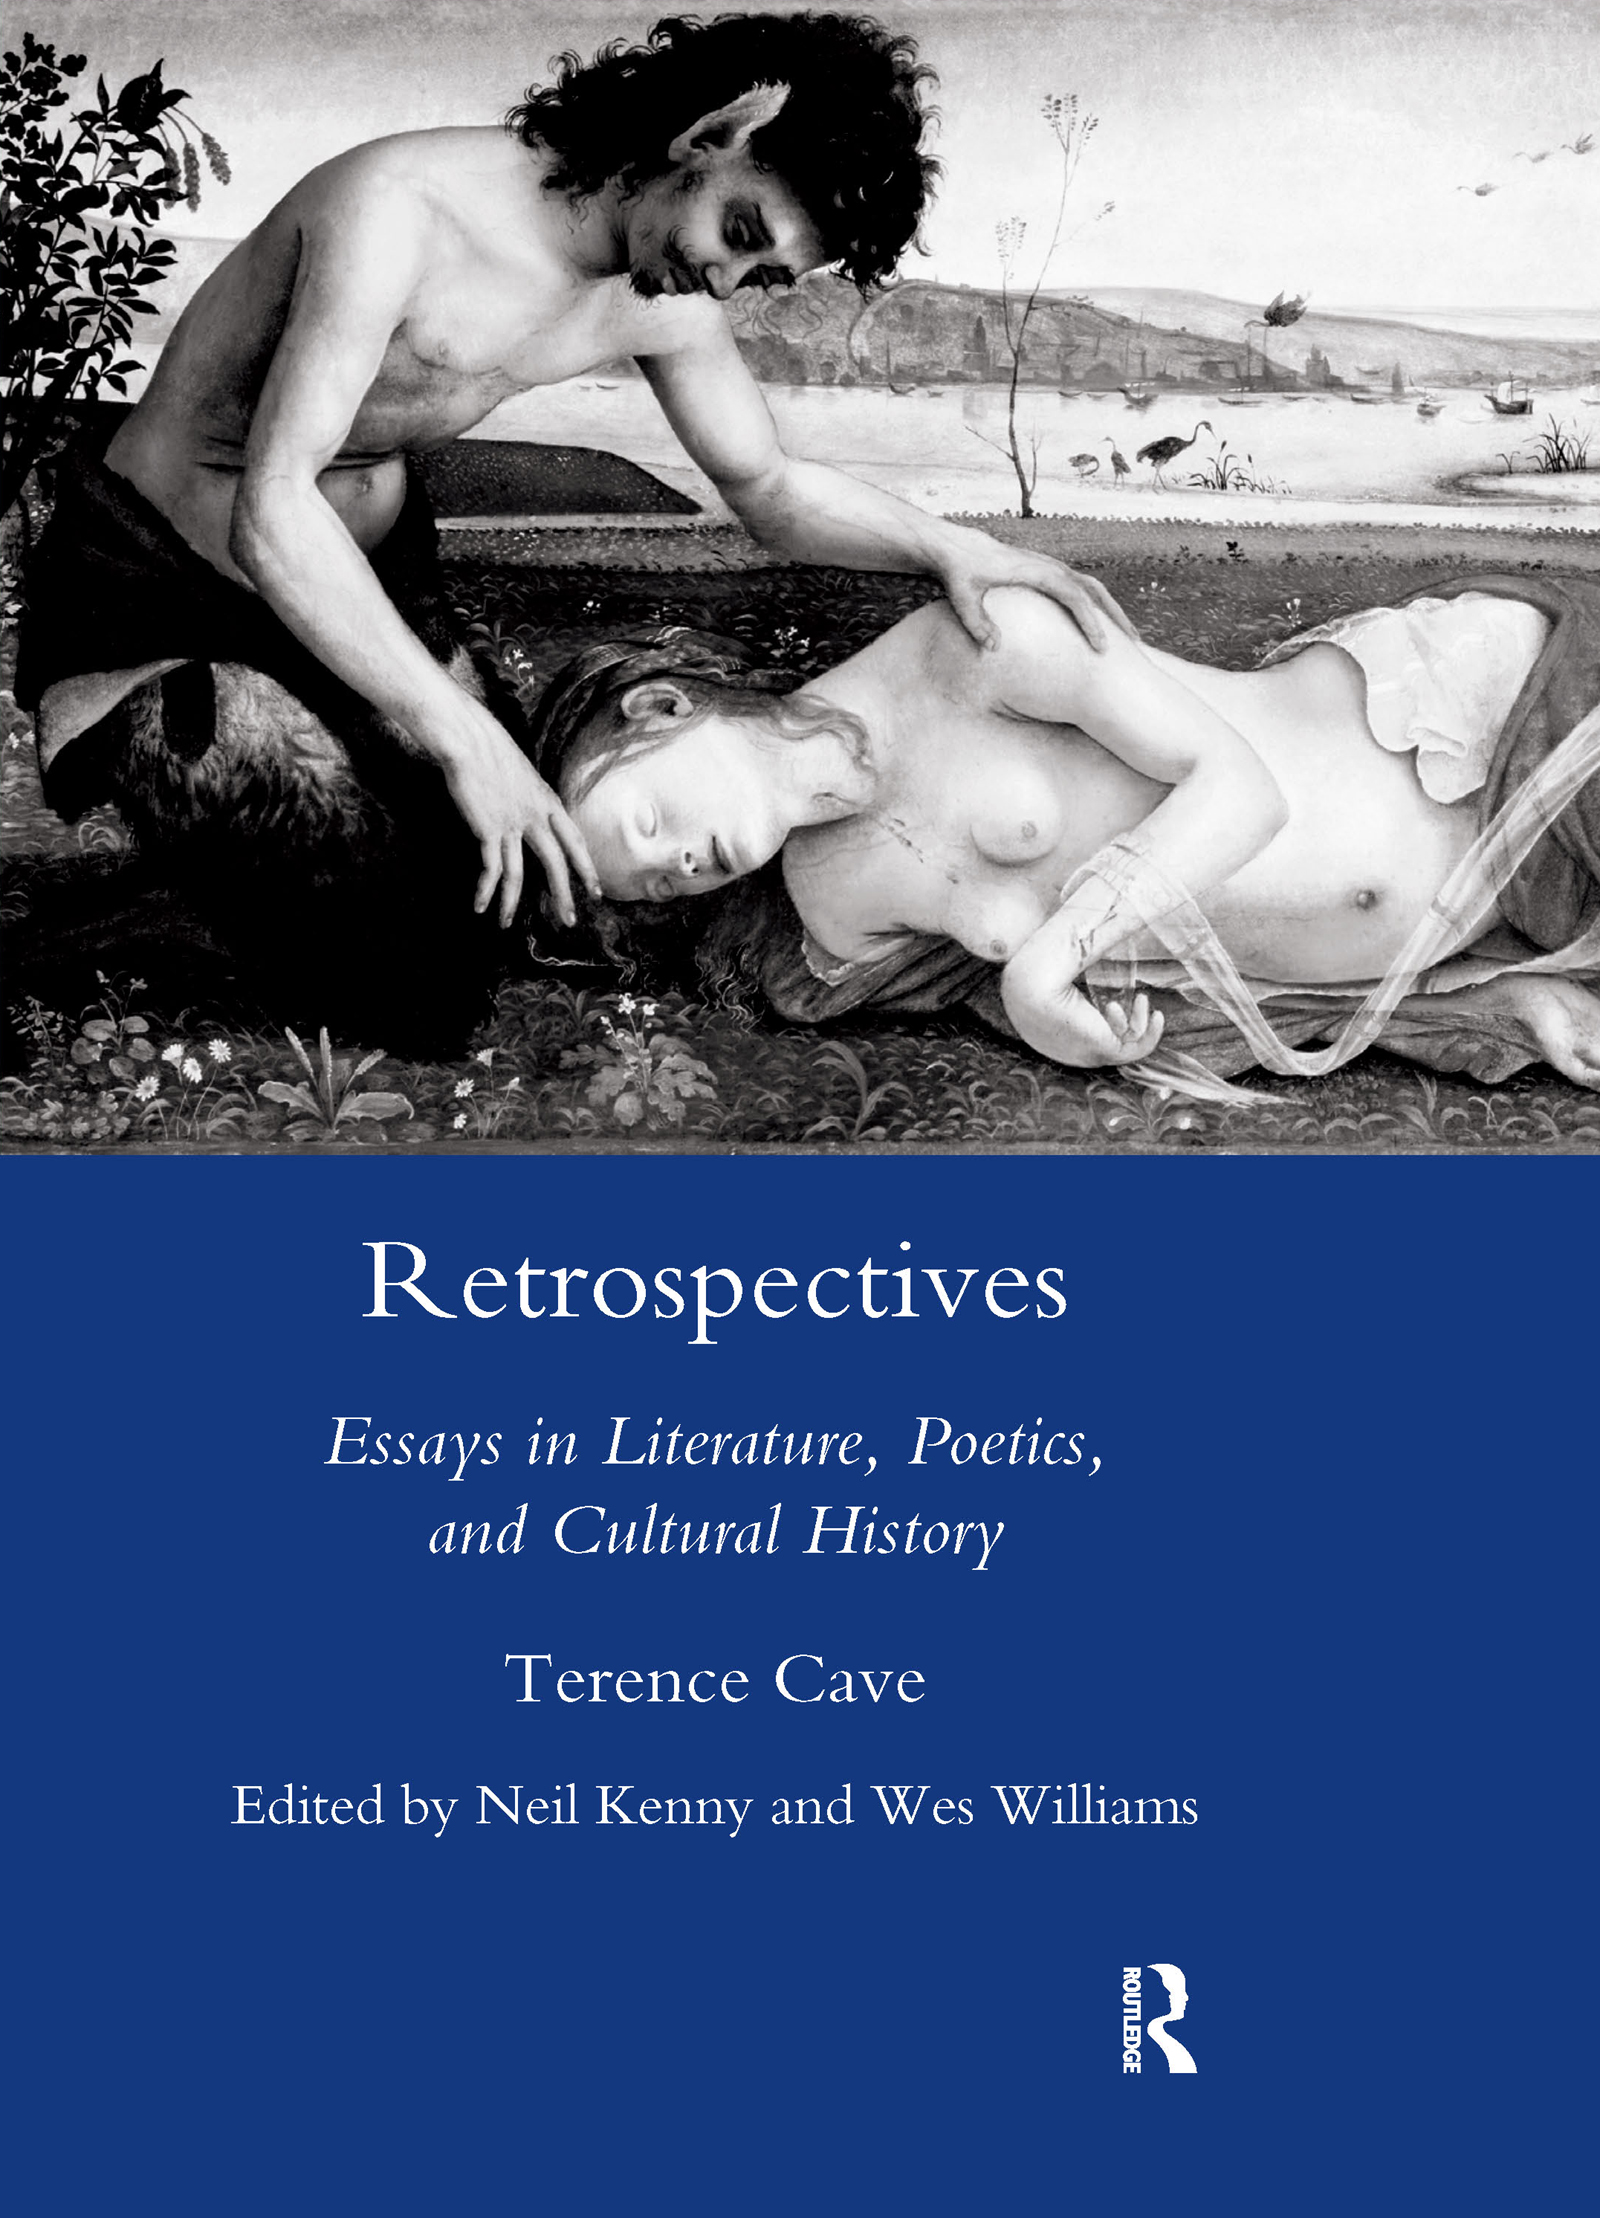 Retrospectives: Essays in Literature, Poetics and Cultural History book cover